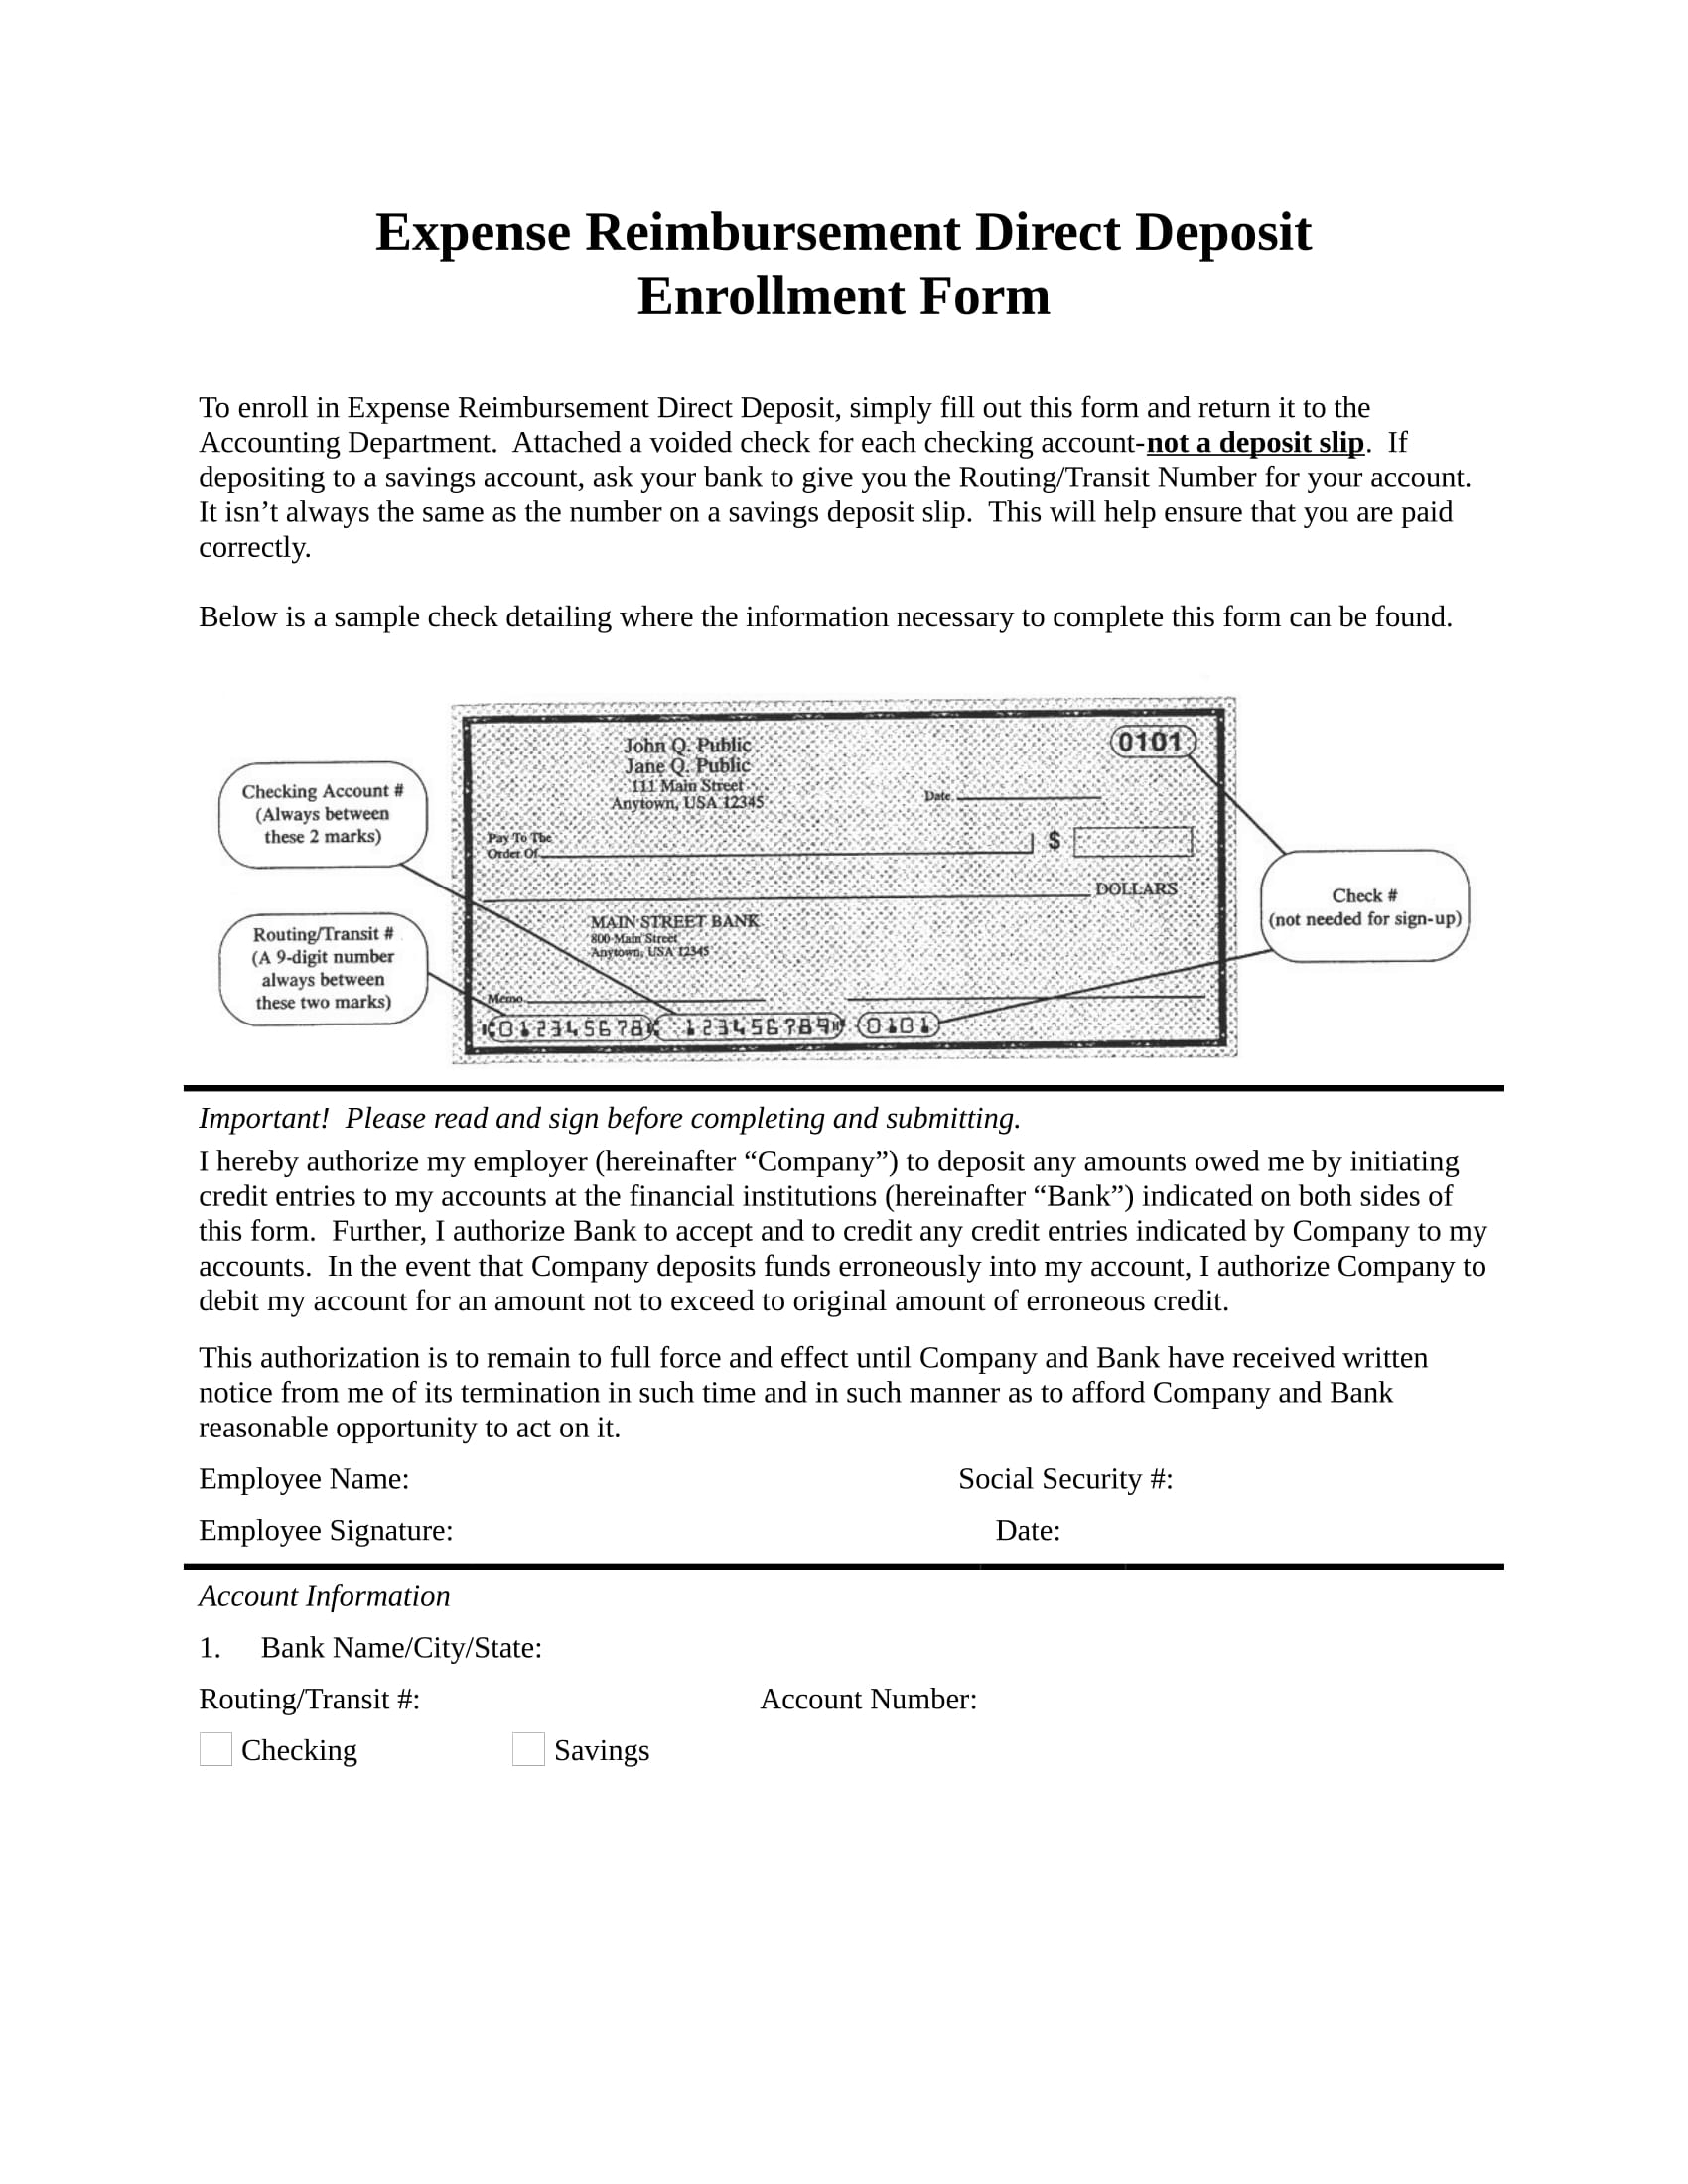 Expense Reimbursement Direct Deposit Enrollment Form Jpg 1700x2200 Print Template